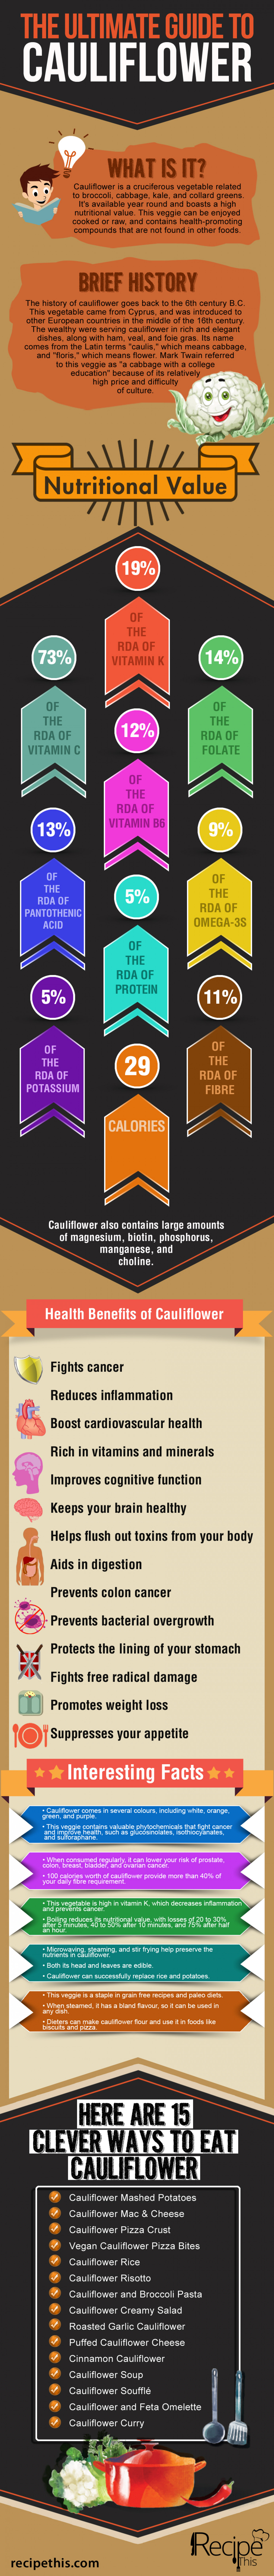 The Ultimate Guide To Cauliflower Infographic